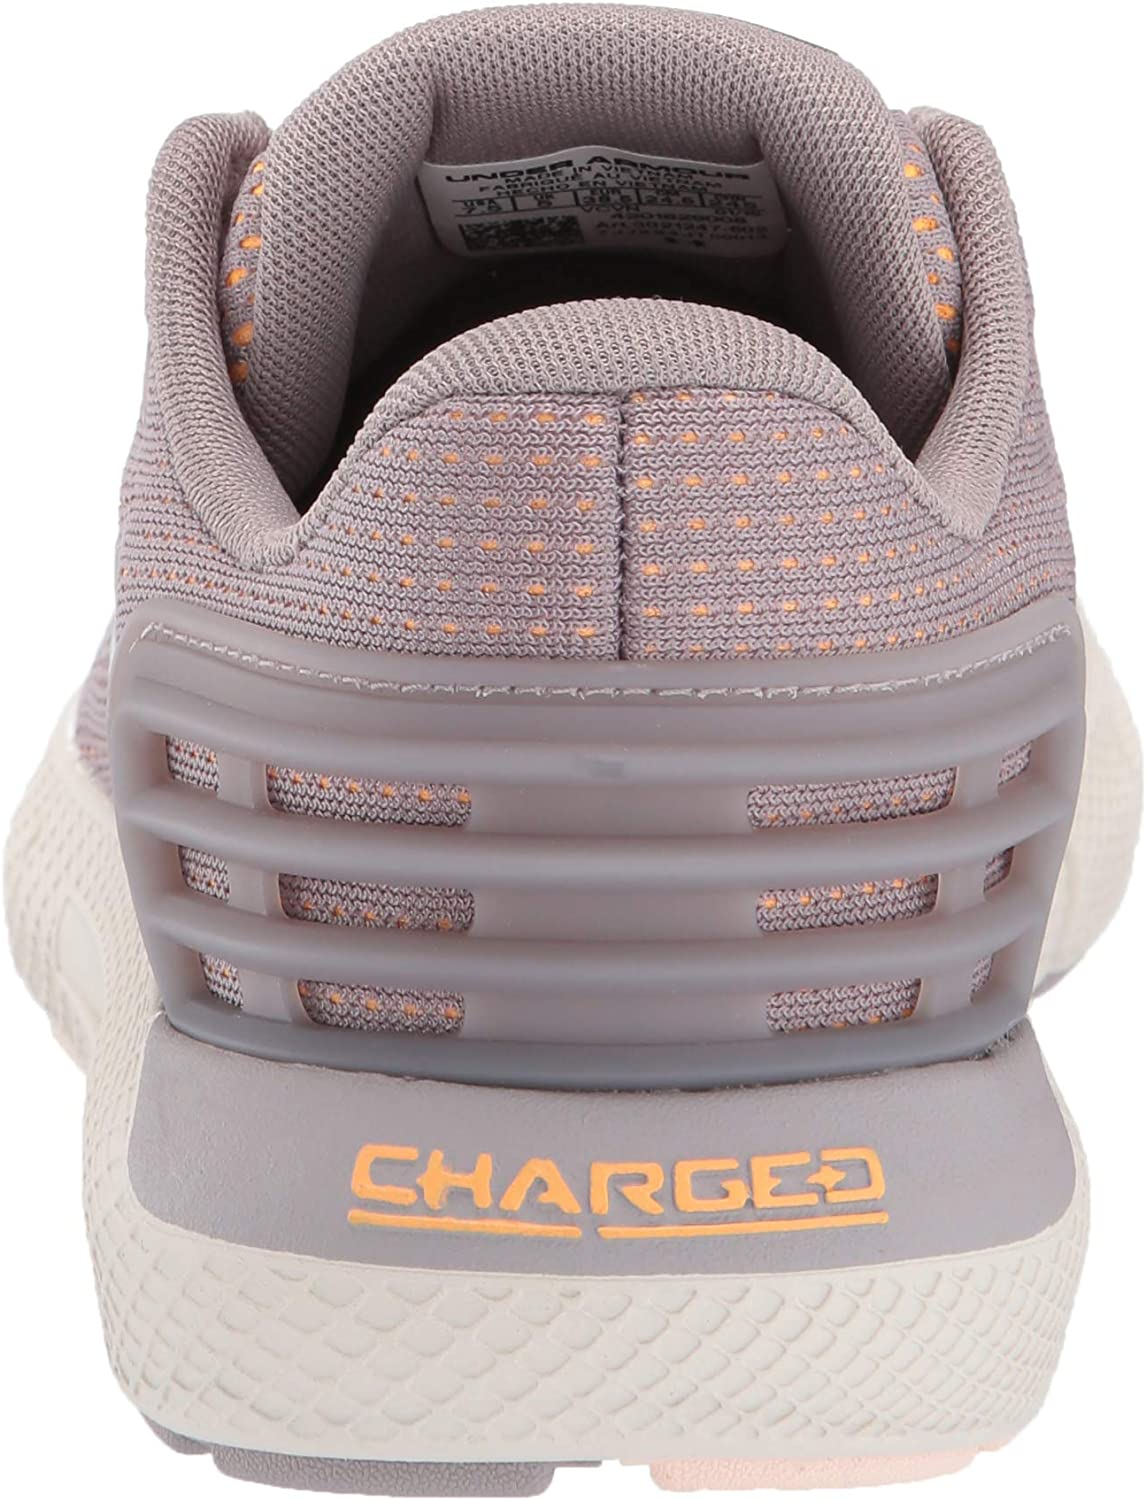 Under Armour Womens Charged Rogue Running Shoe